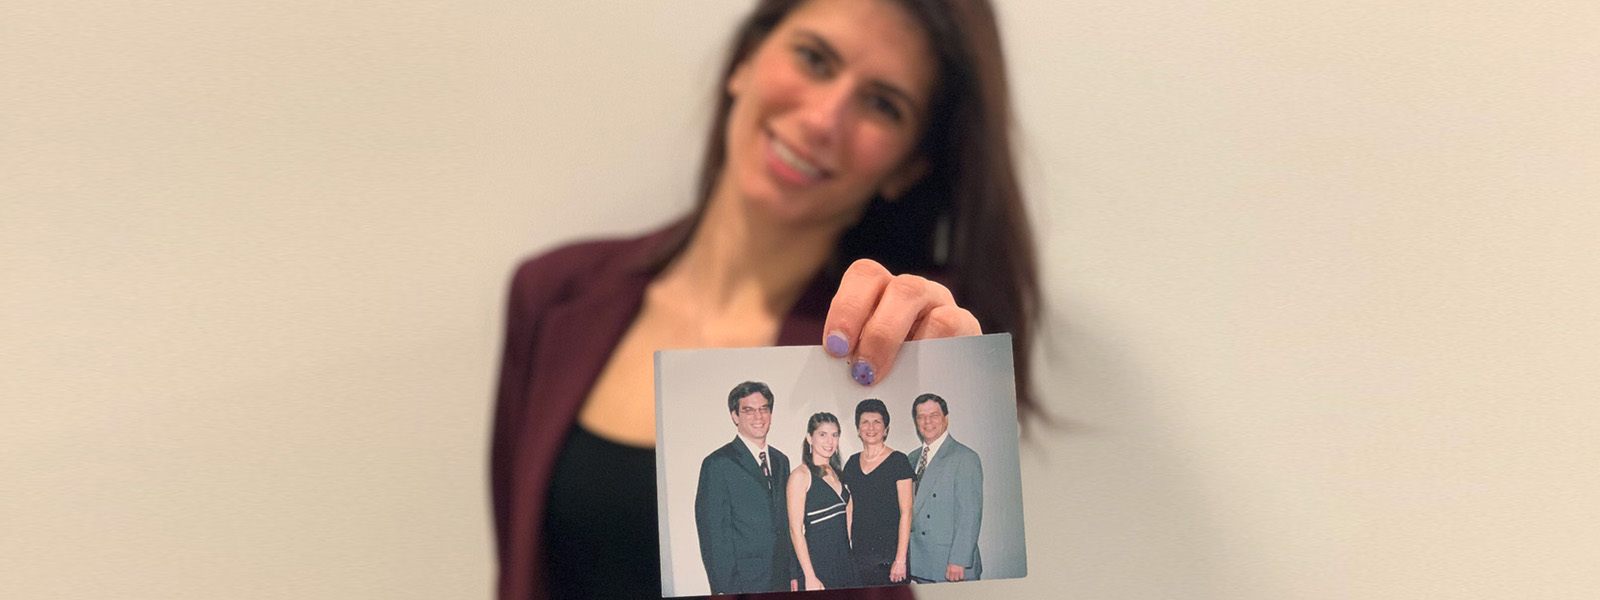 Crew member Kristin holding a picture of her family, parents and brother